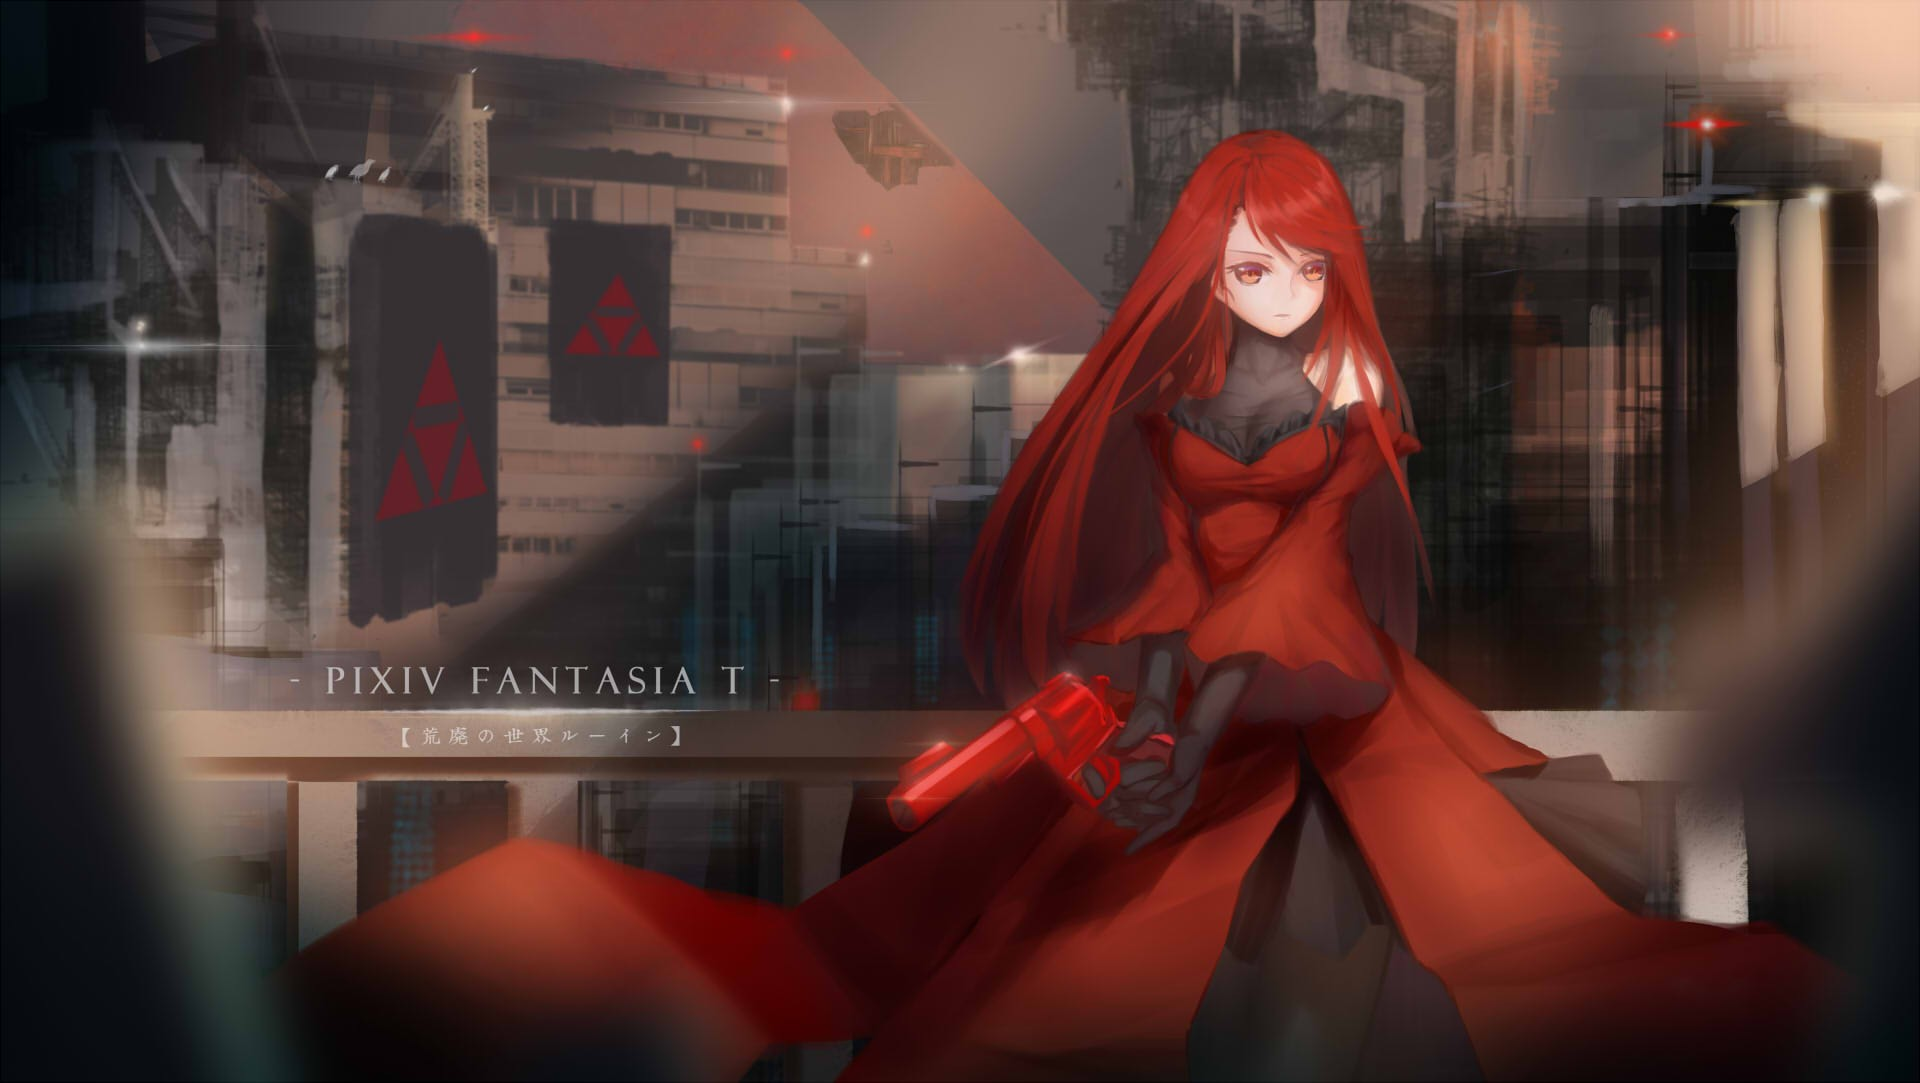 Anime 1920x1083 anime anime girls Pixiv Fantasia T weapon gun redhead long hair red eyes